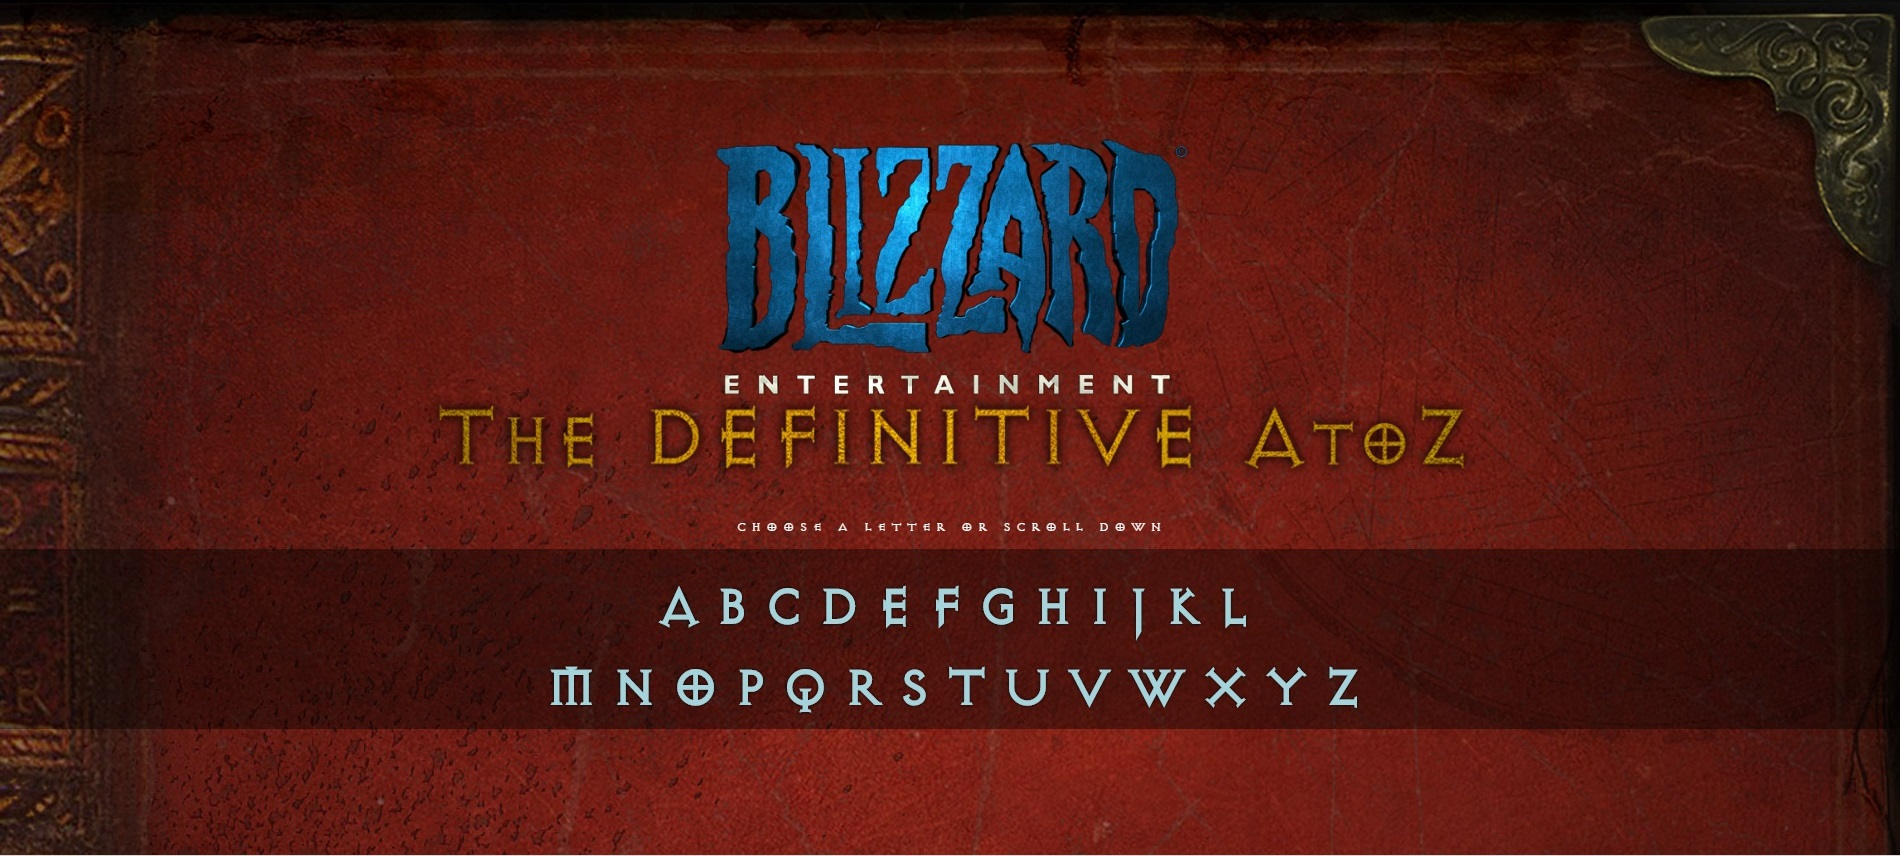 Blizzard Entertainment: The Definitive A to Z